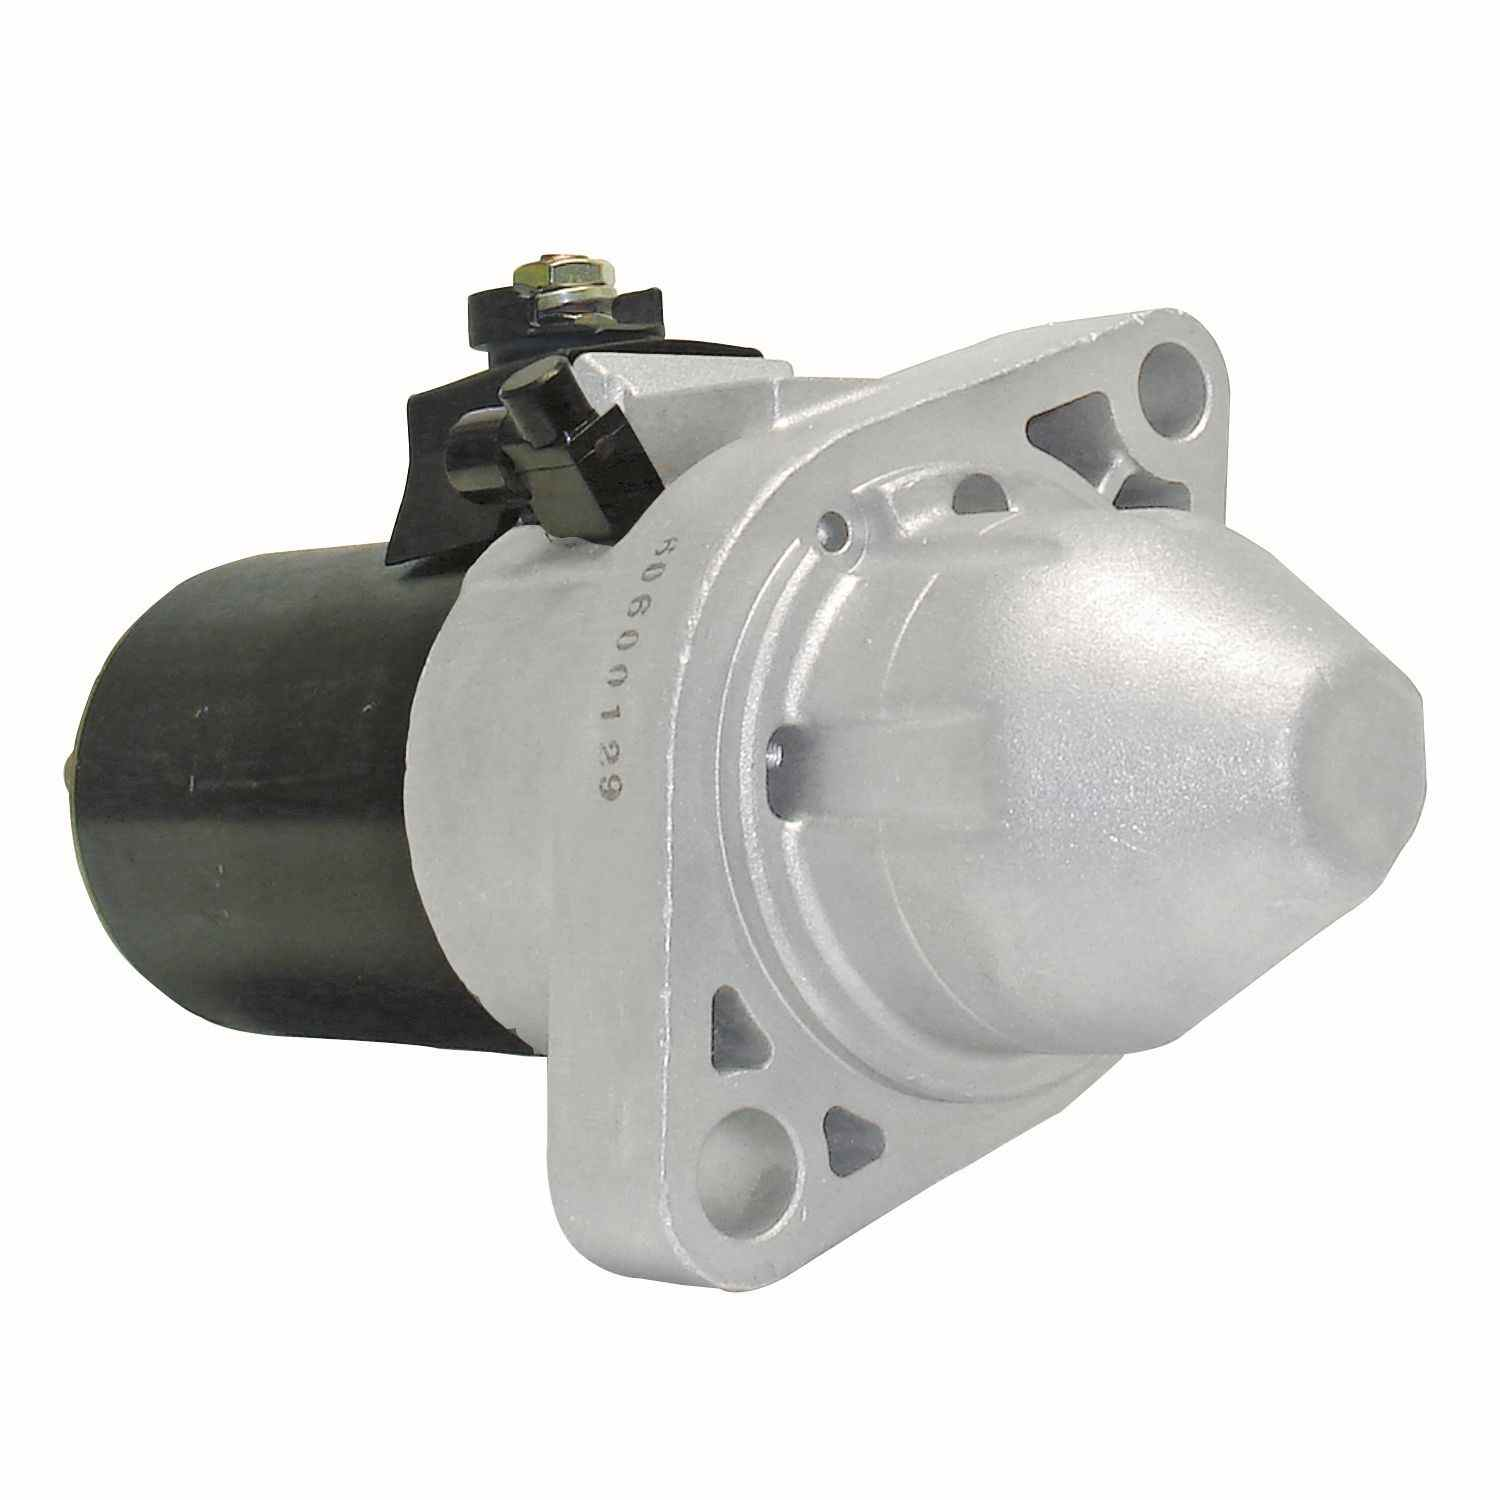 ACDELCO GOLD/PROFESSIONAL - Reman Starter Motor - DCC 336-1783